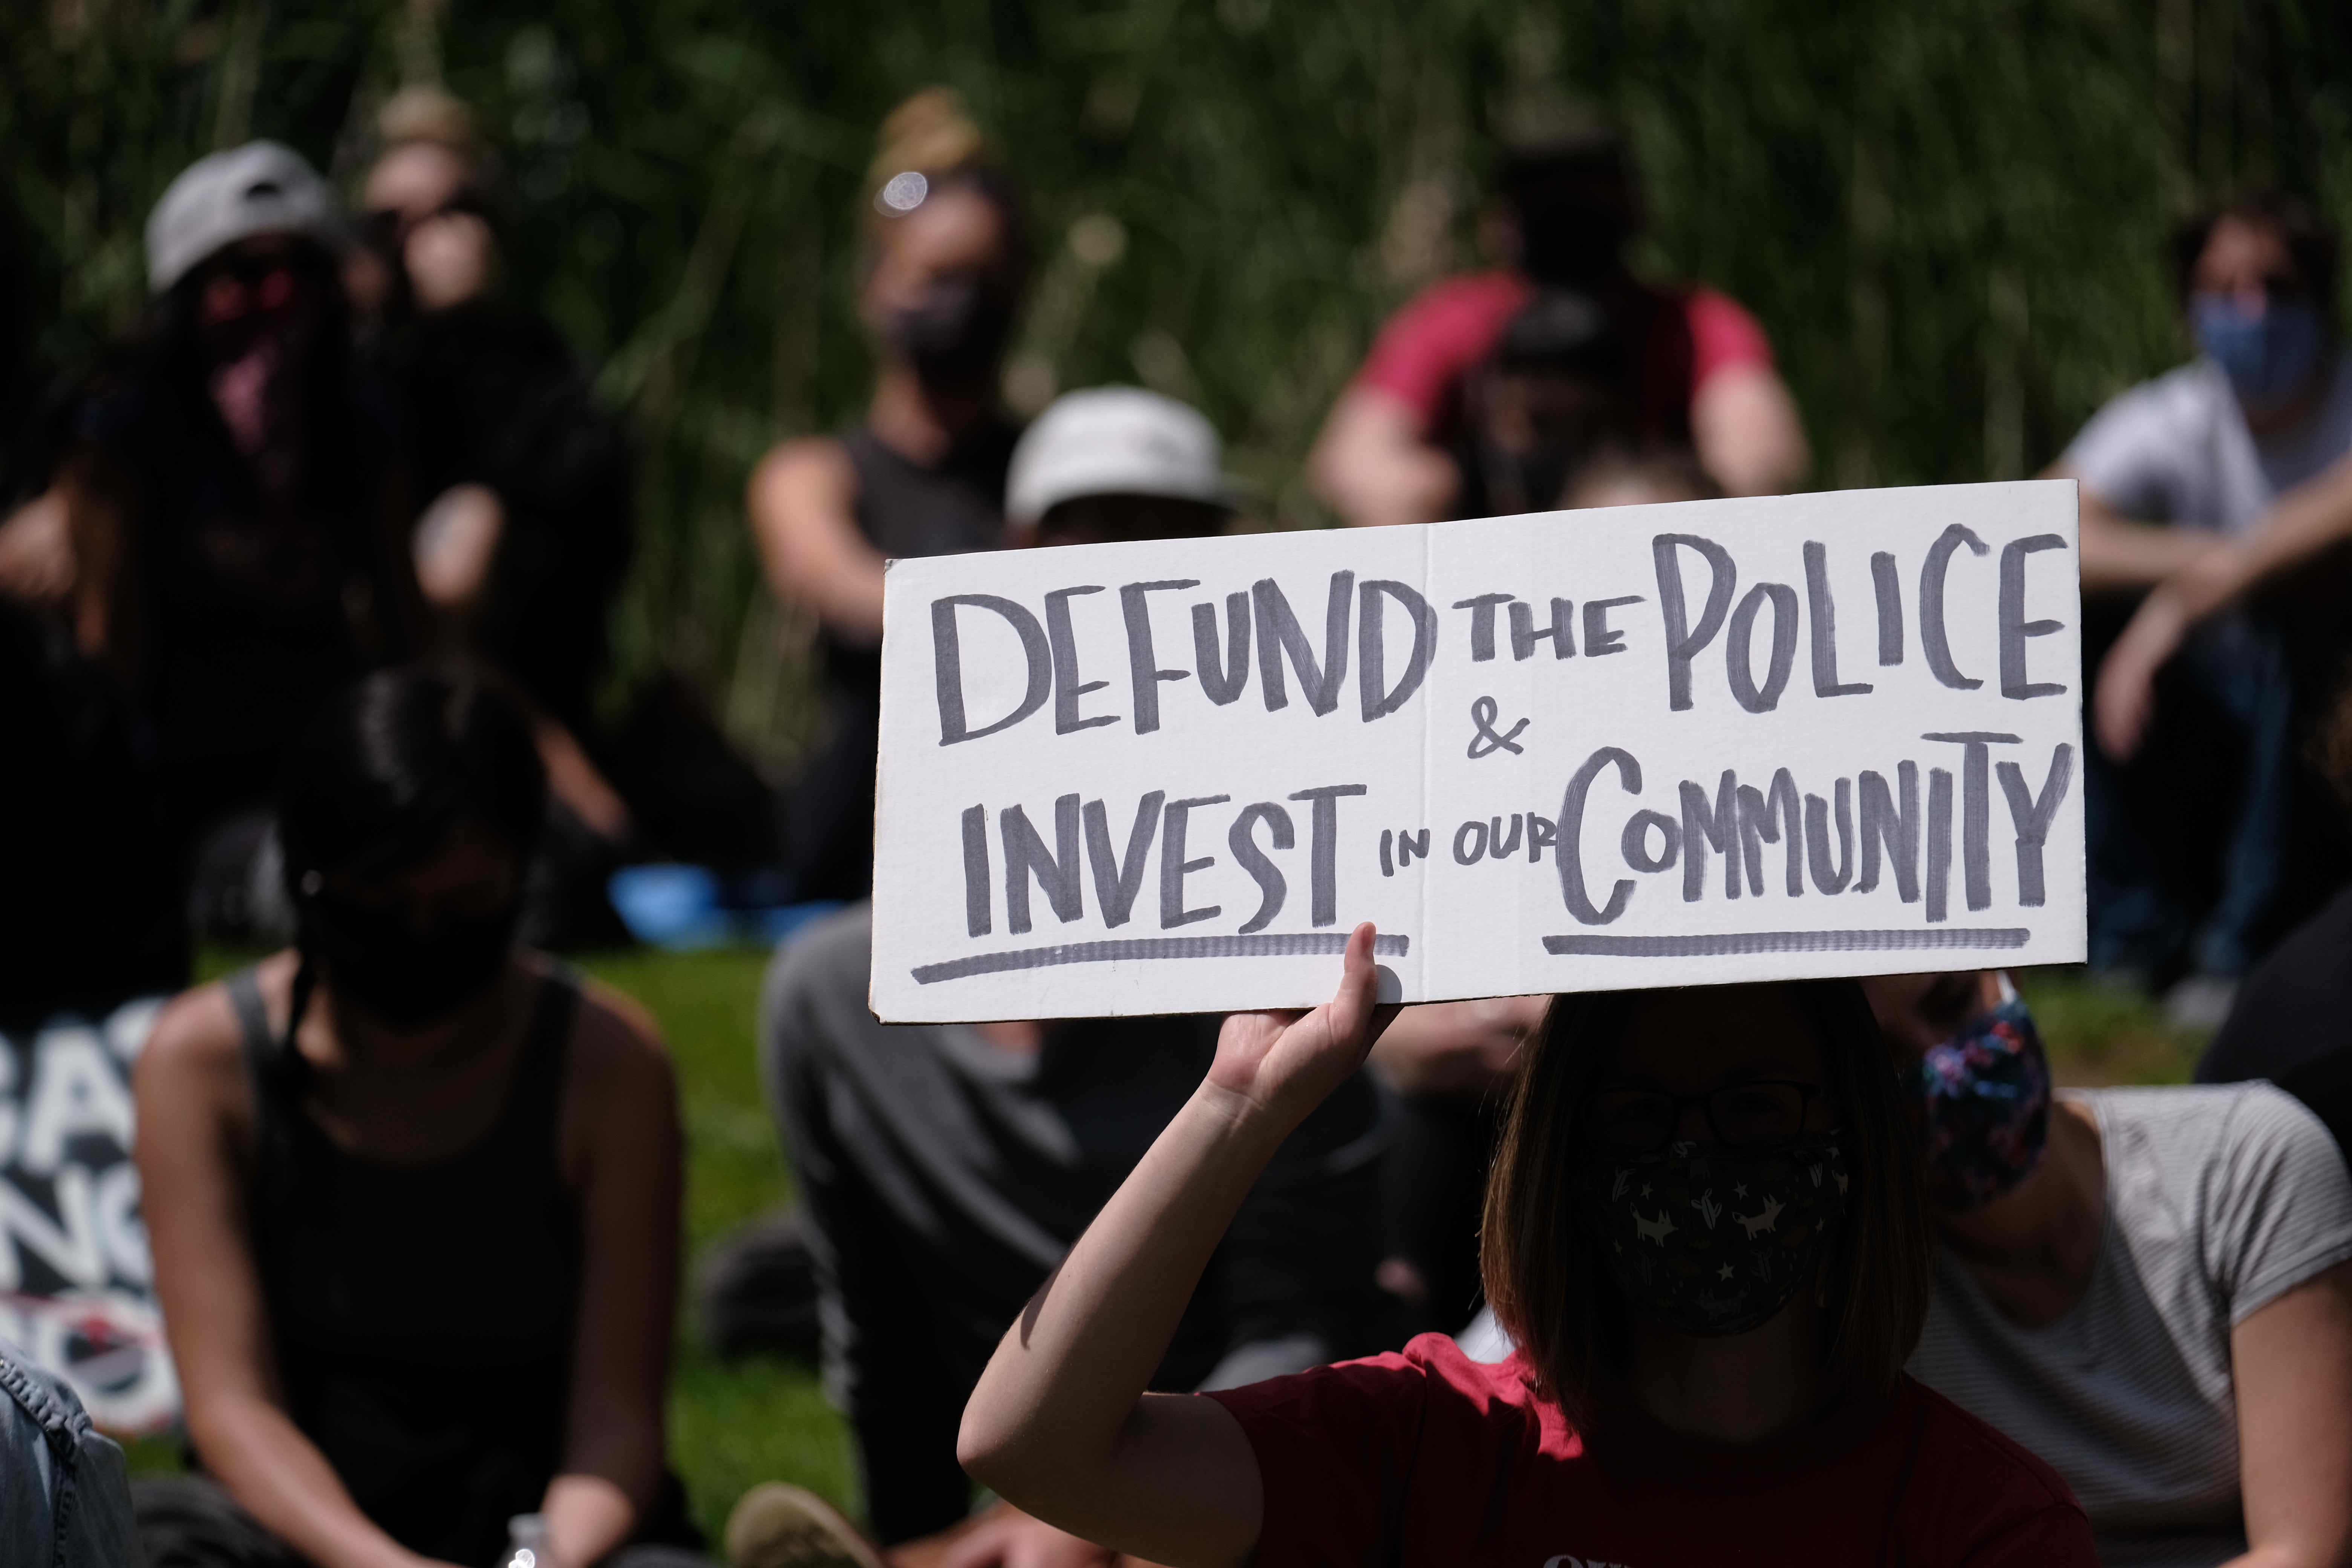 defund police protests